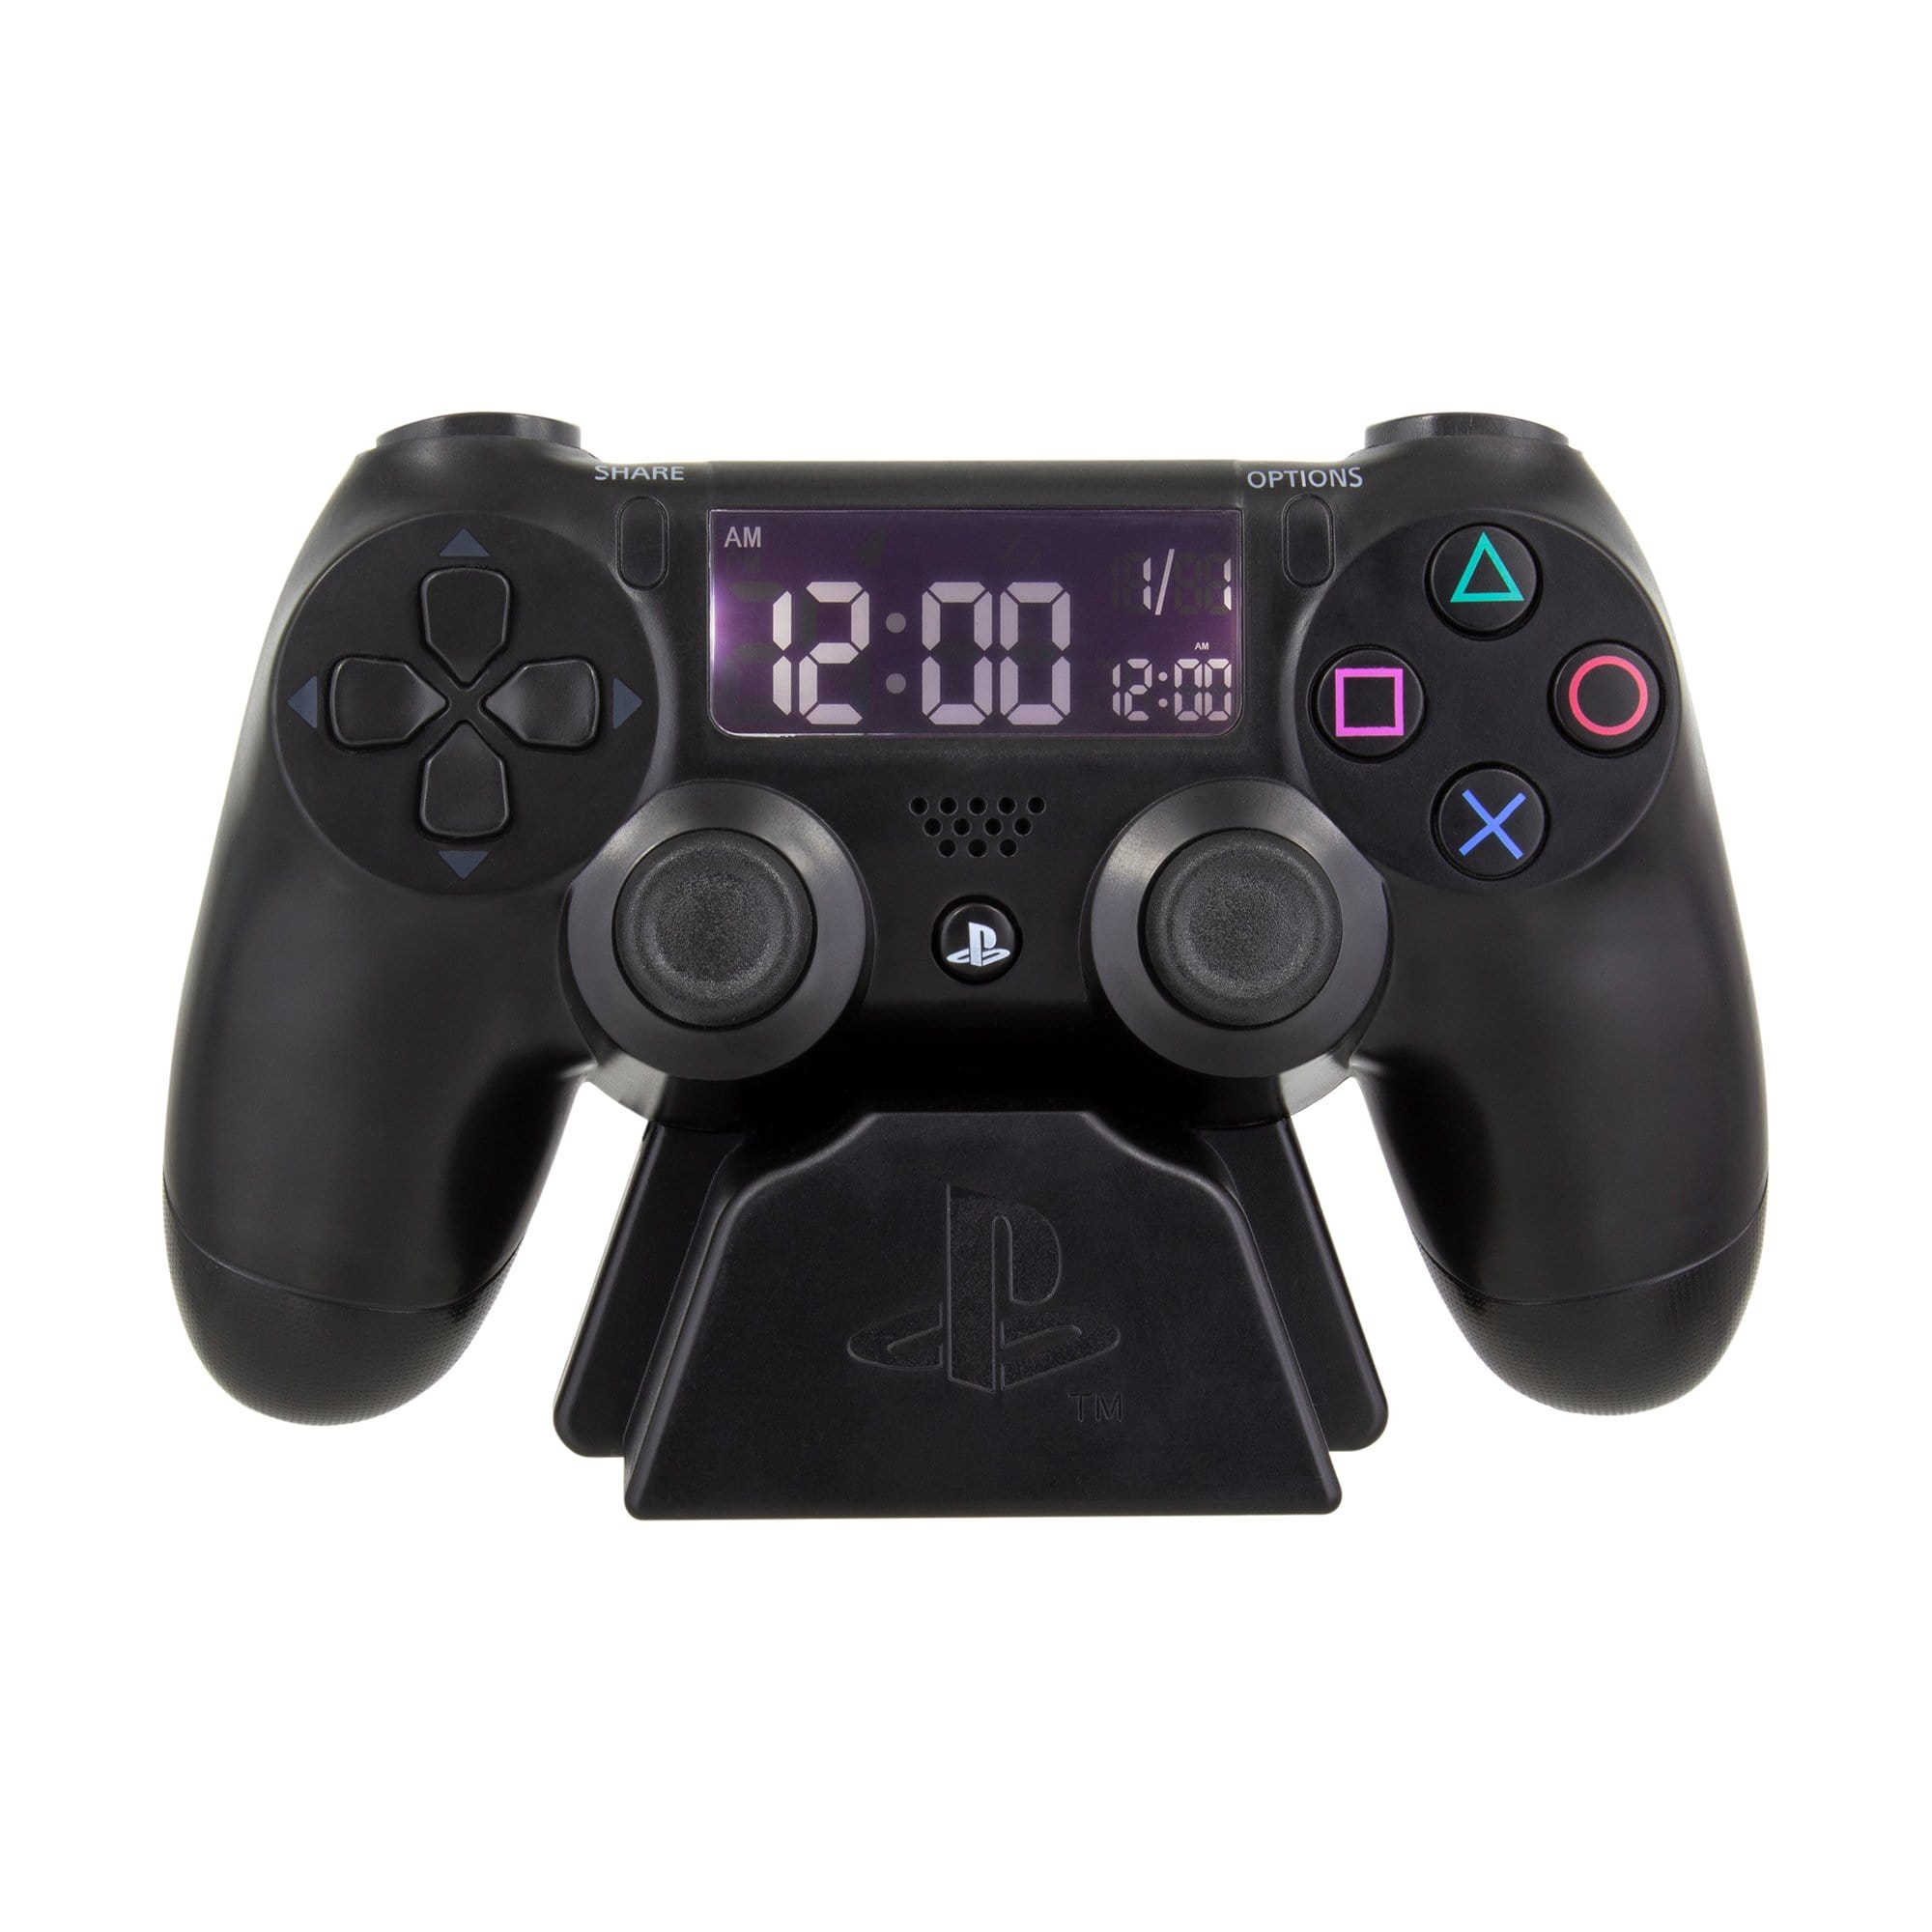 PlayStation Controller Alarm Clock made by Paladone, sold by HIDEit Mounts. Featuring Dual Shock 4 replica controller with the time displayed.